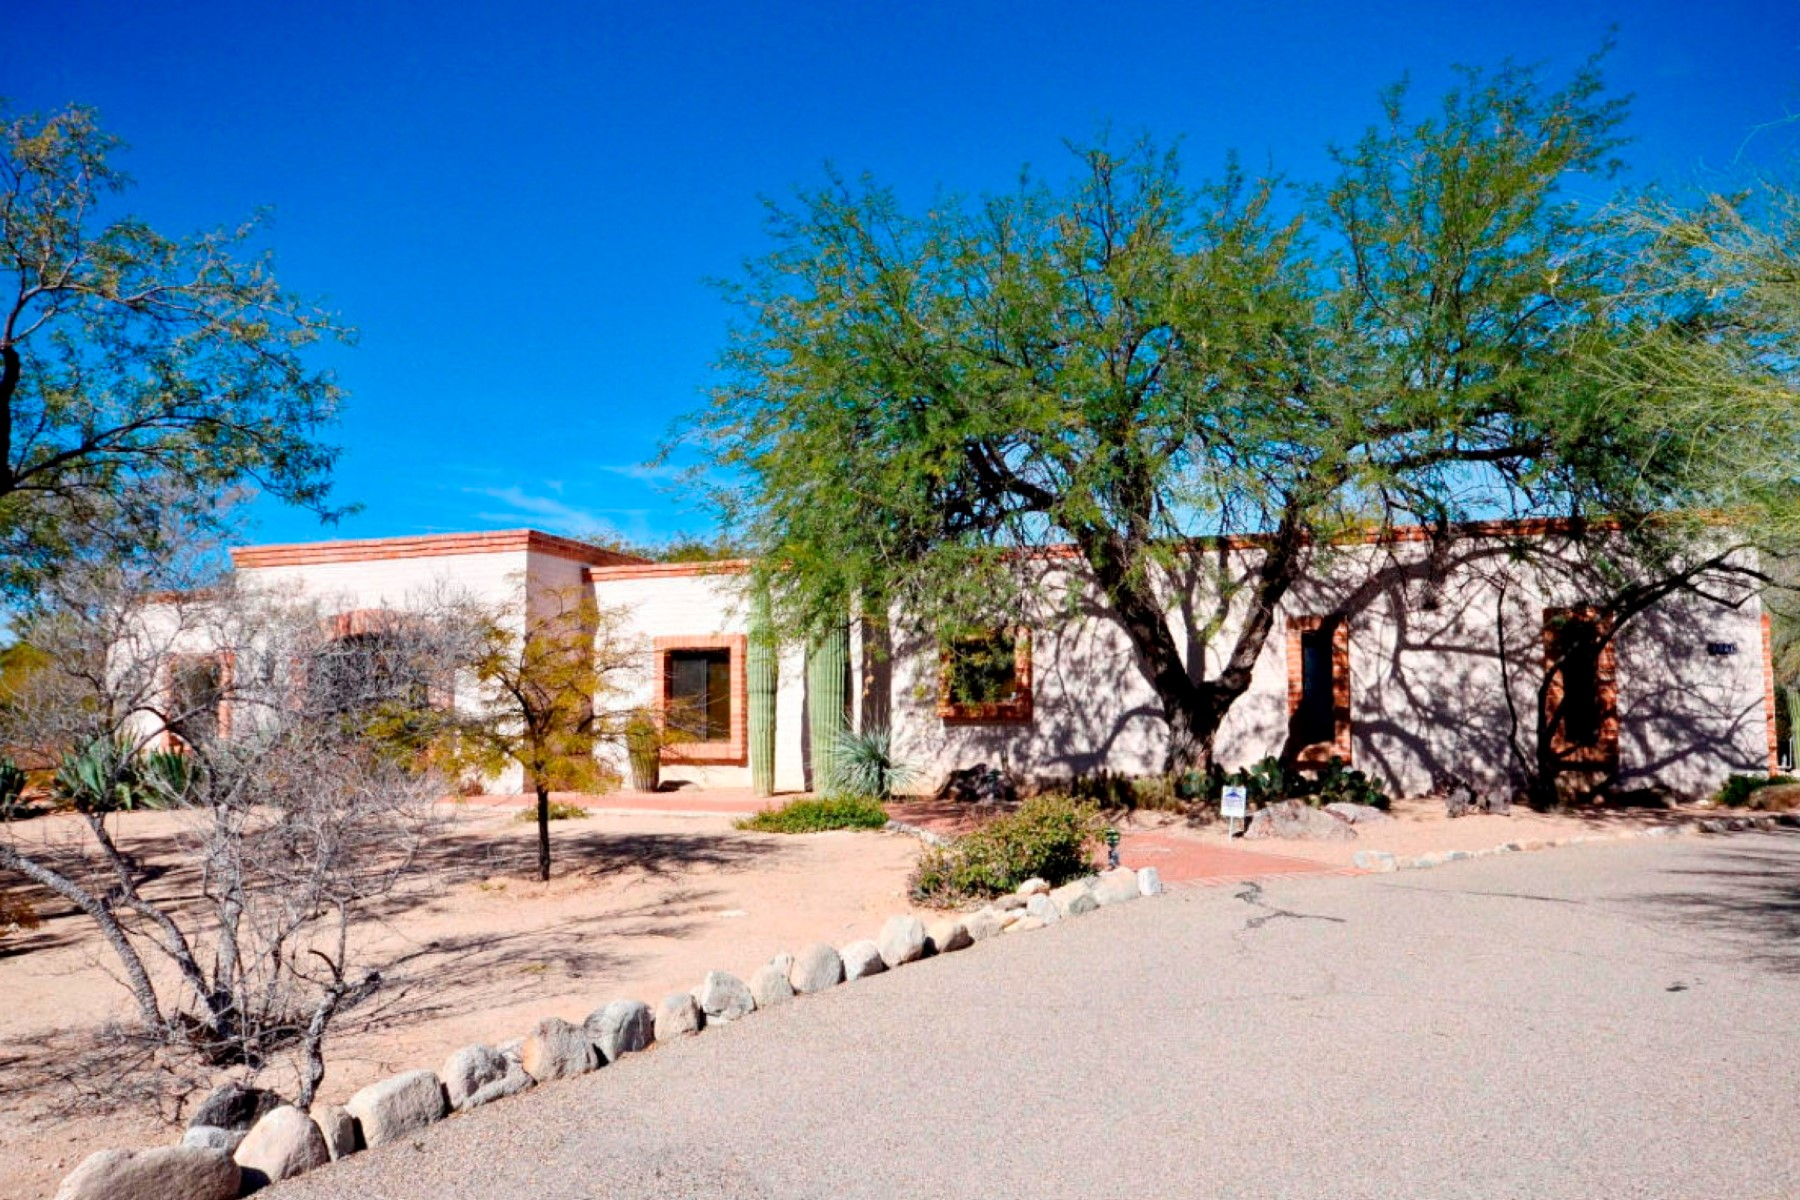 Single Family Home for Sale at Fabulous Views on 1+ Acres in Catalina Foothills 6601 N Avenida De Posada Tucson, Arizona 85718 United States